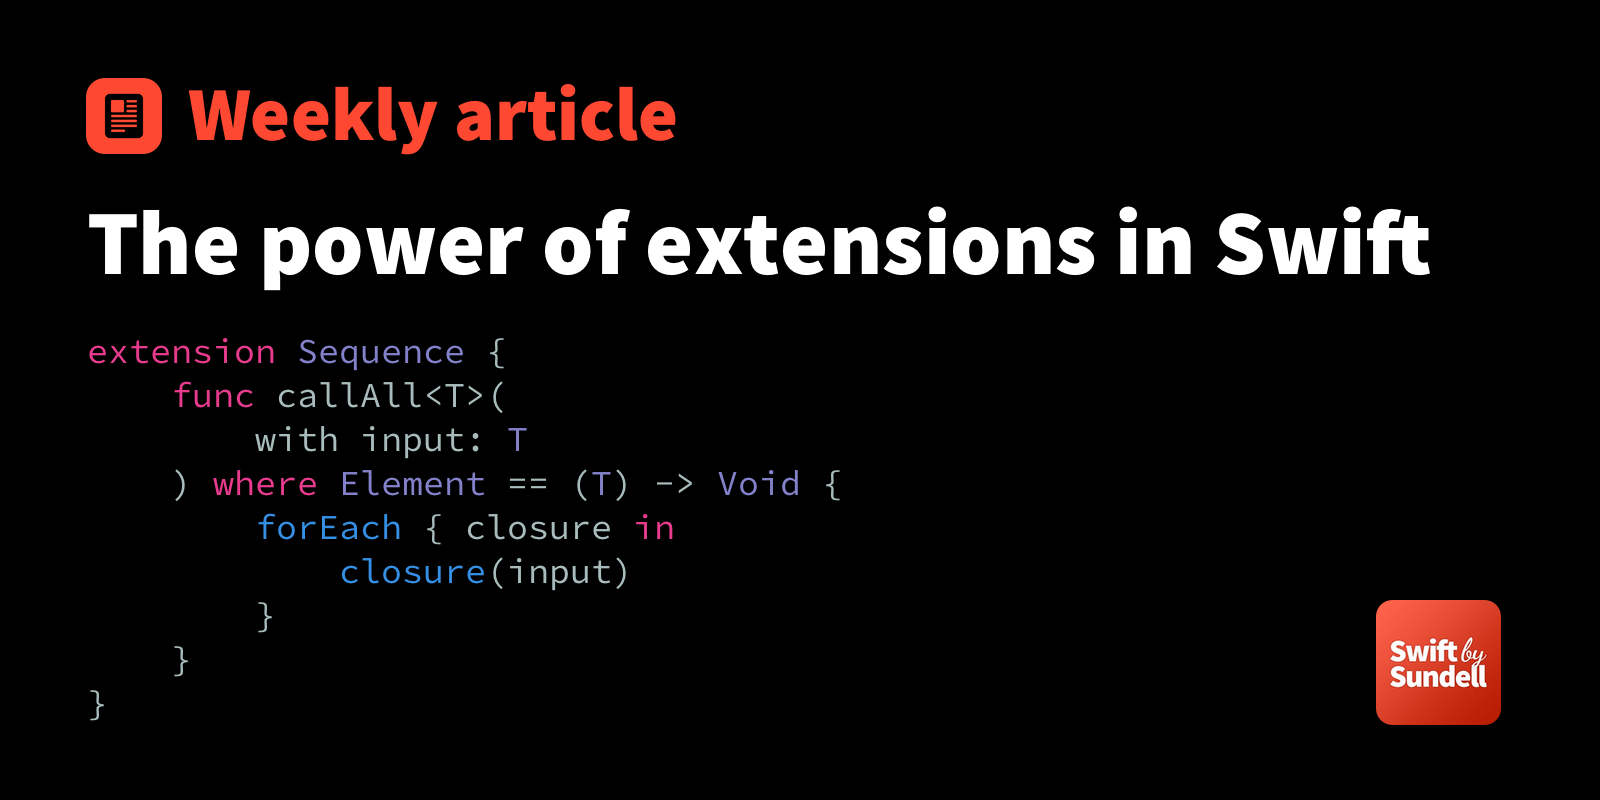 The power of extensions in Swift | Swift by Sundell